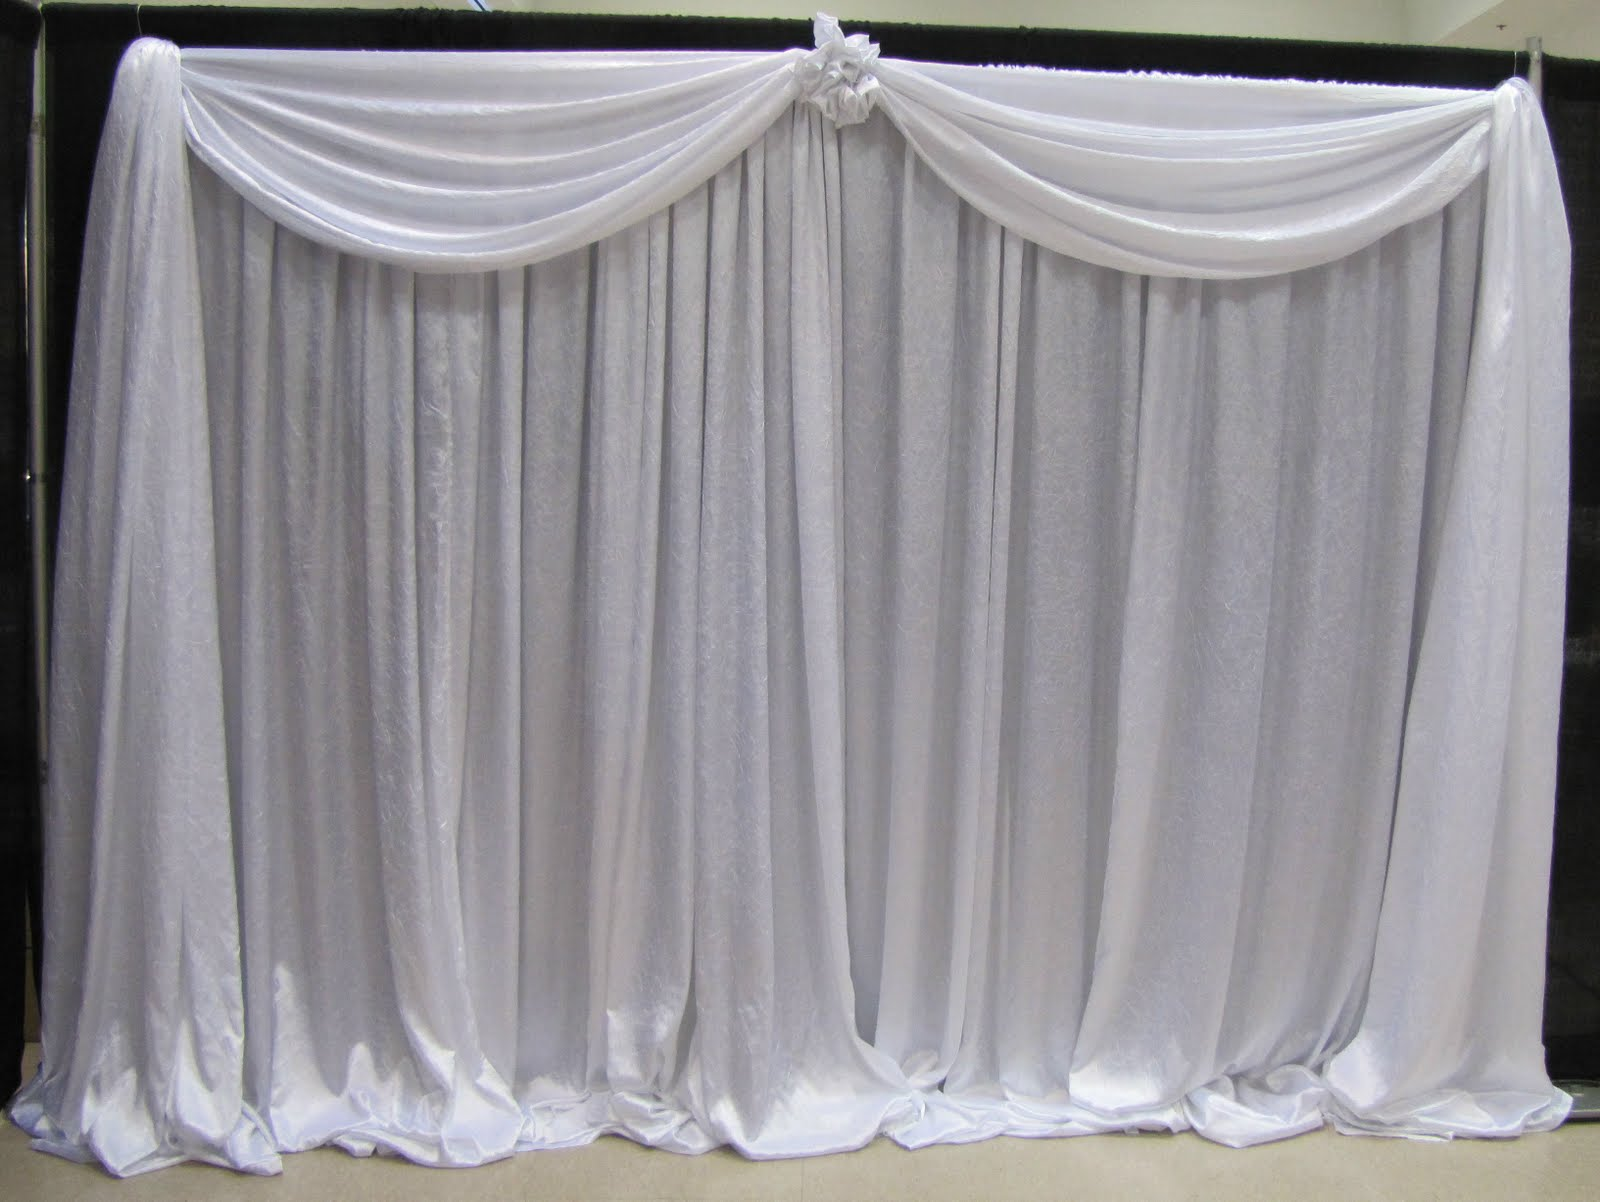 Drapes for Bedroom Windows | Window Drapes | Walmart Drapes